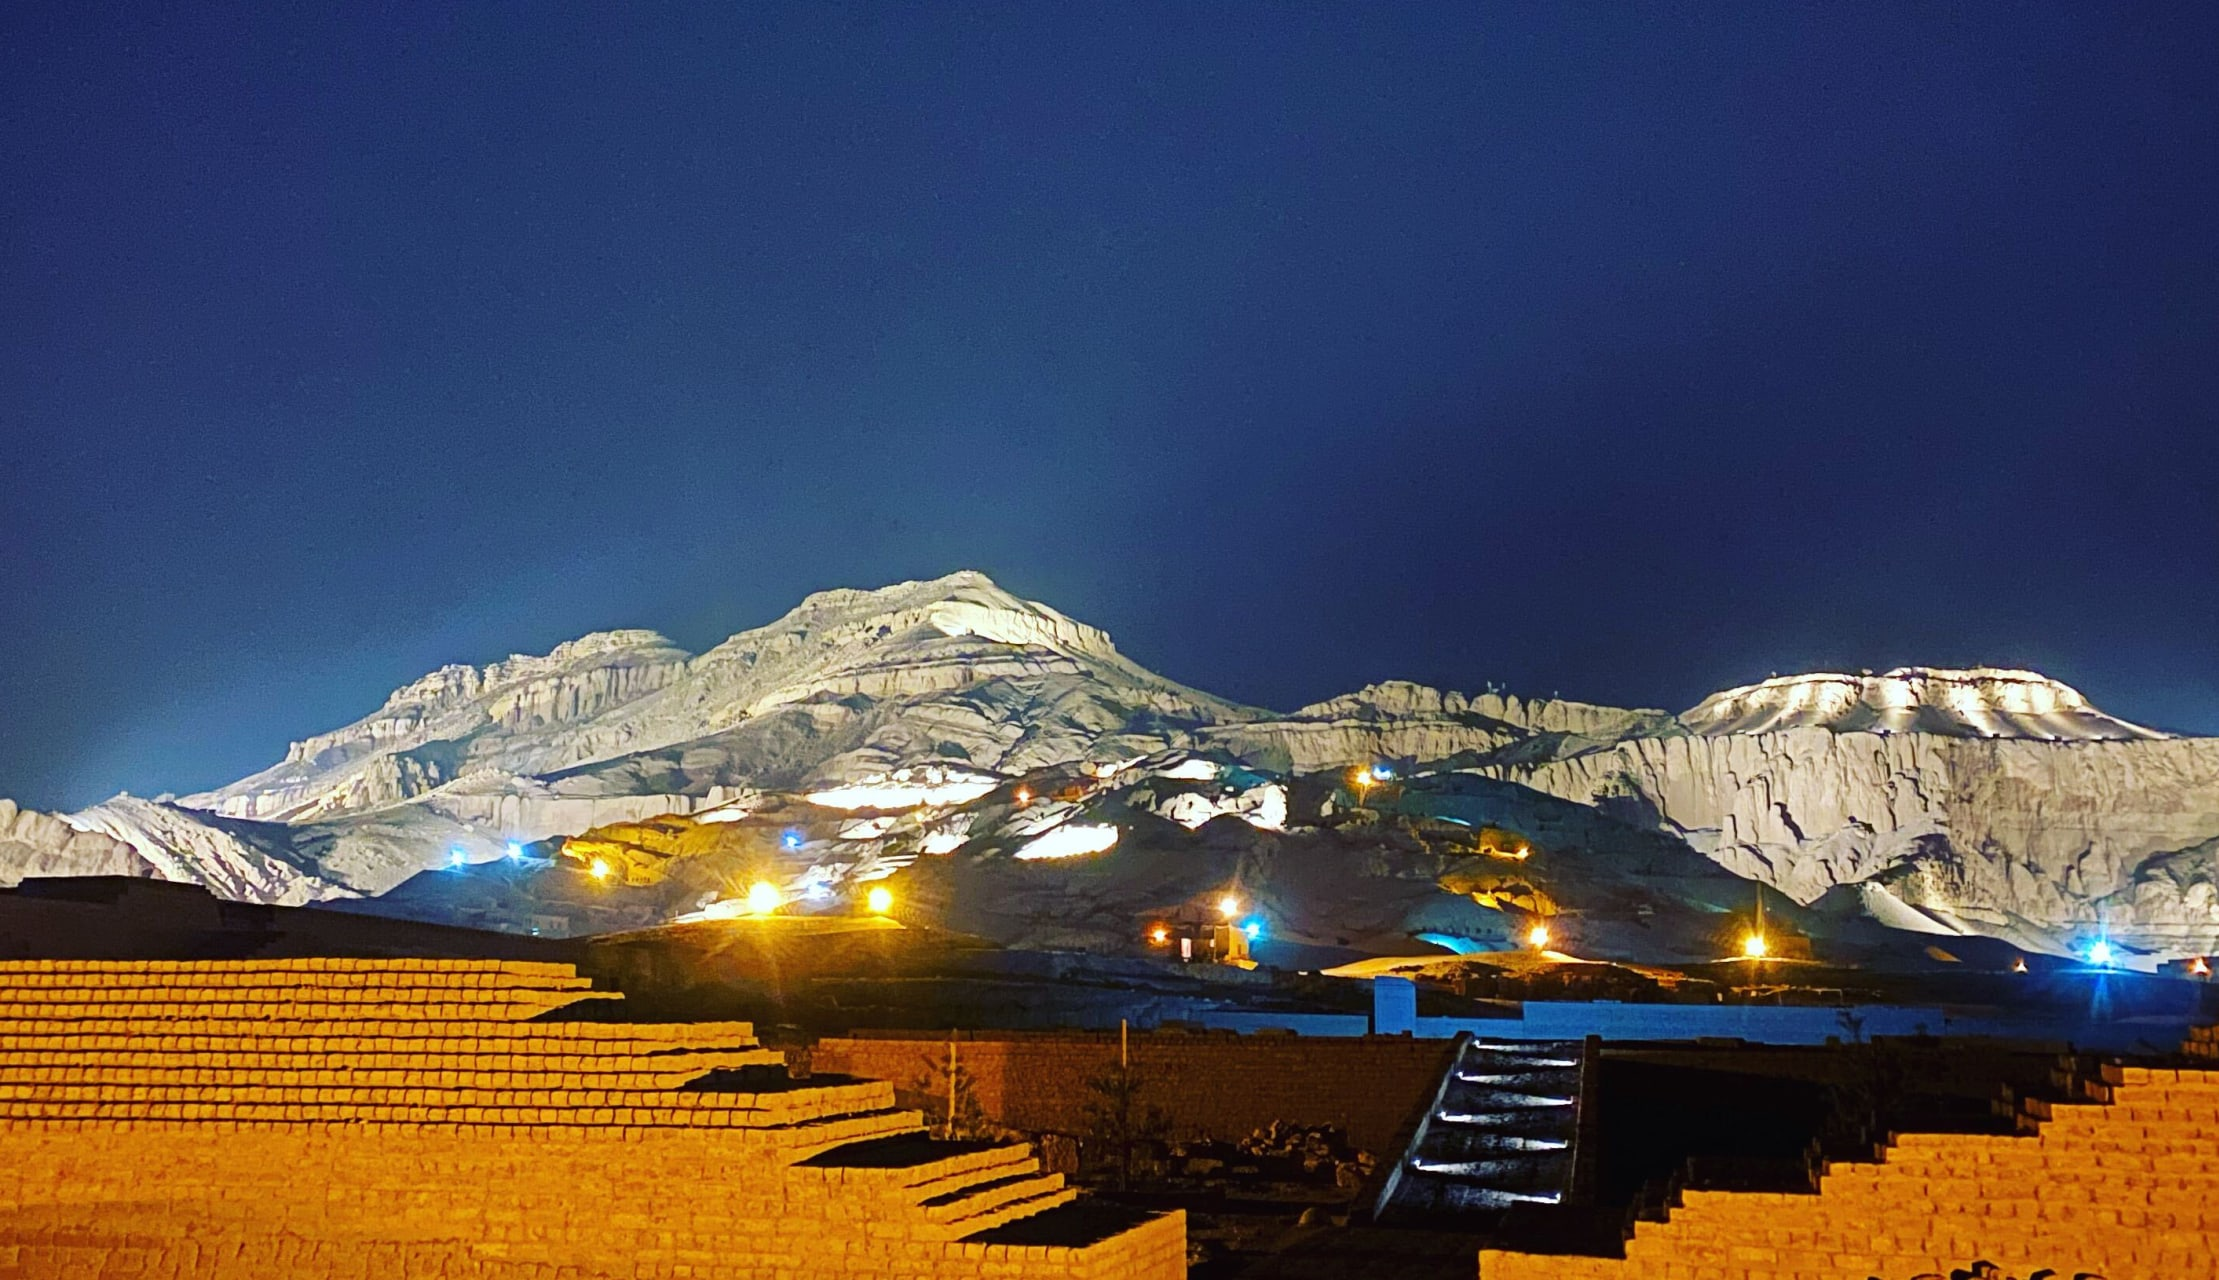 Luxor - The Mountain of Thebes At Night